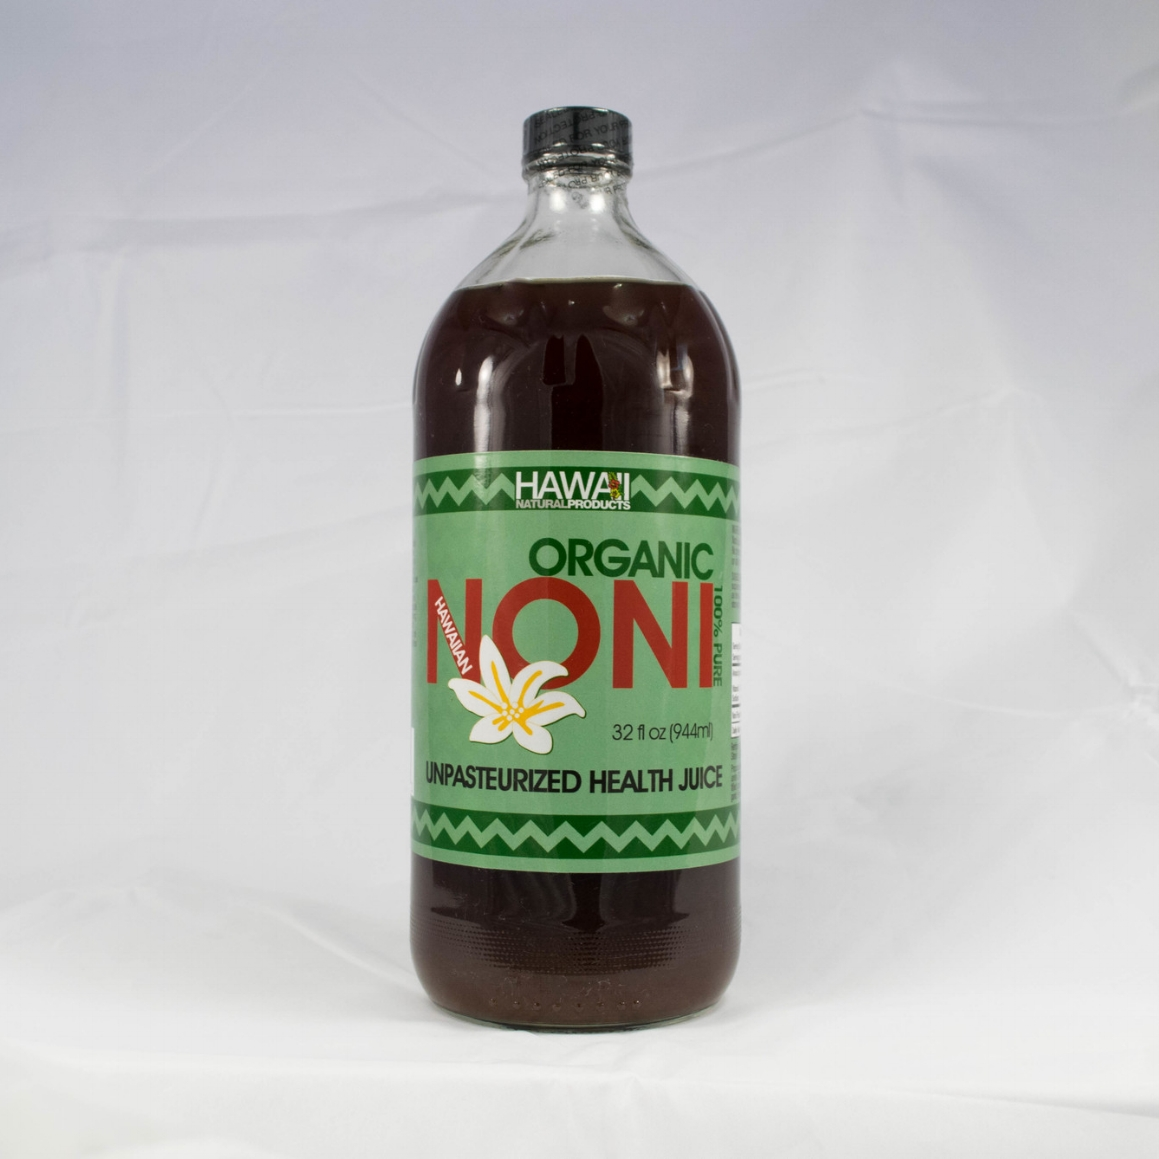 mana-foods-unpasturized-noni-juice-hawaiian-natural-products